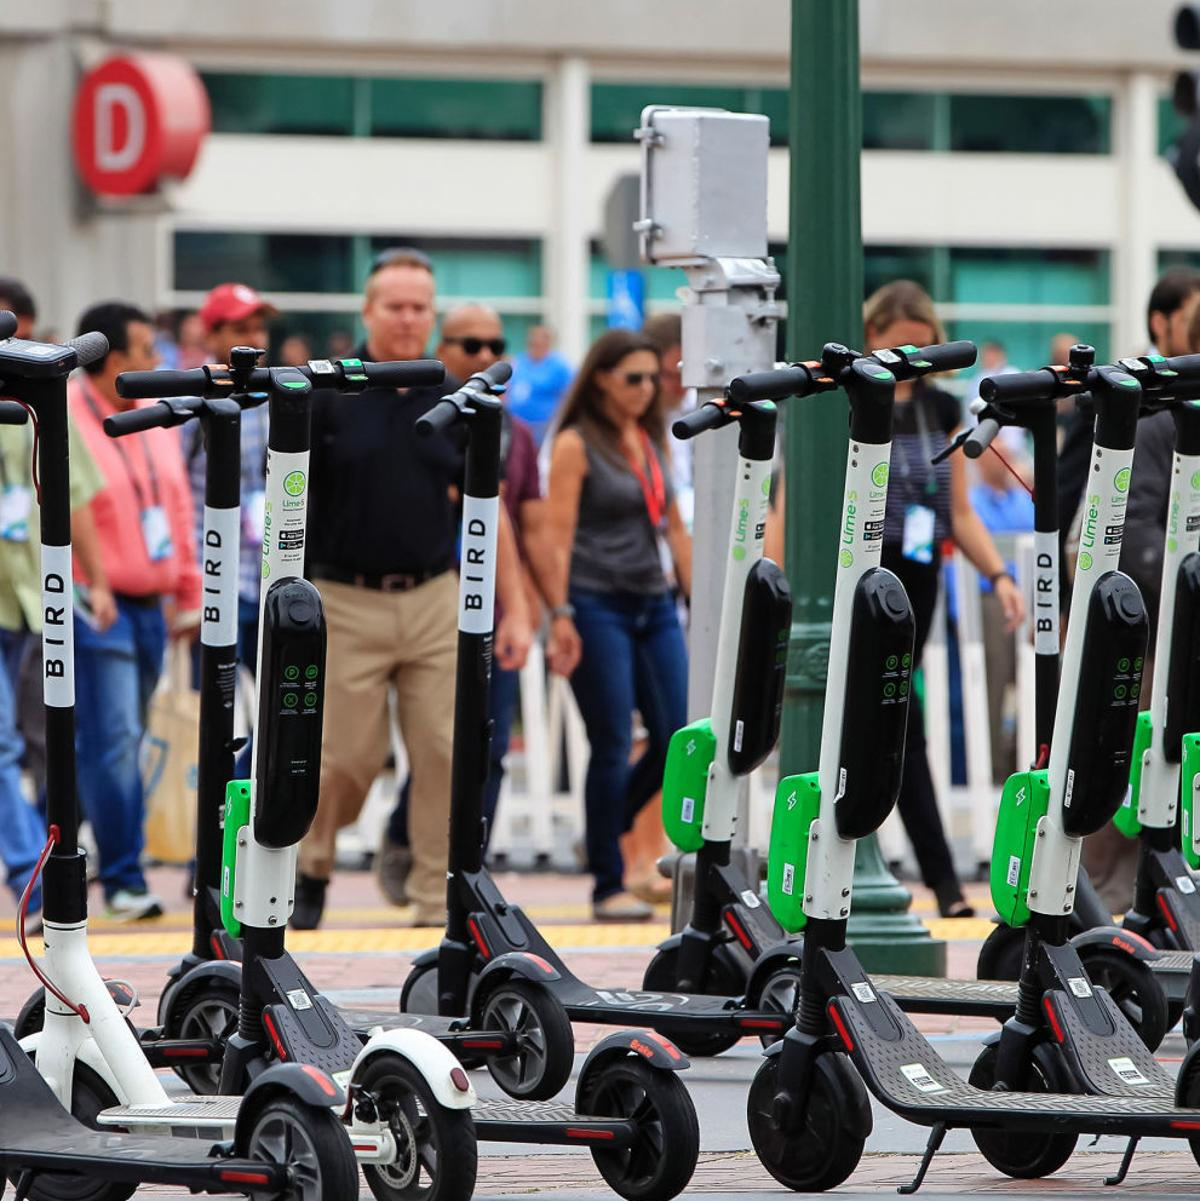 Pilot program allowing e-scooters in Tucson is scrapped, for now